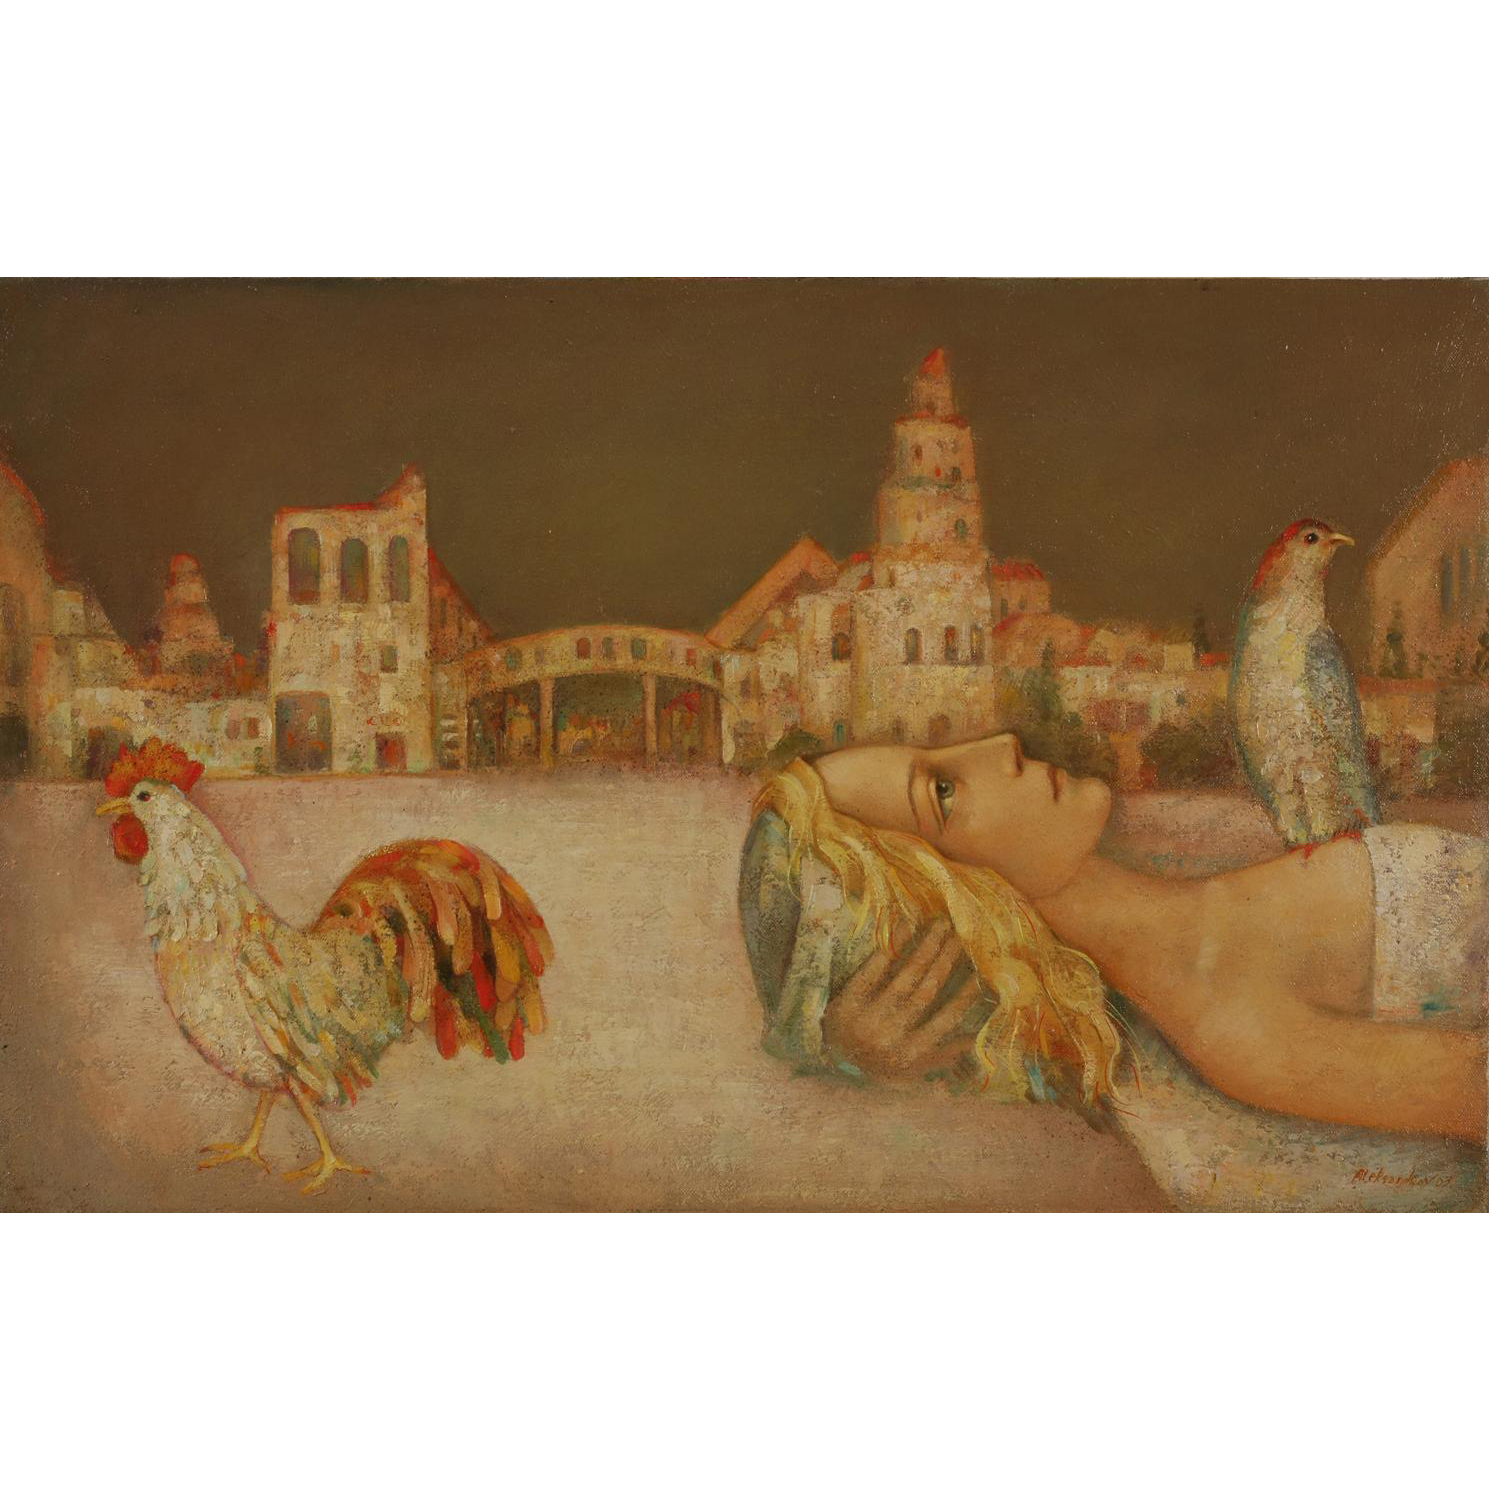 Dreaming woman with rooster and bird original oil painting by Mihail Aleksandrov